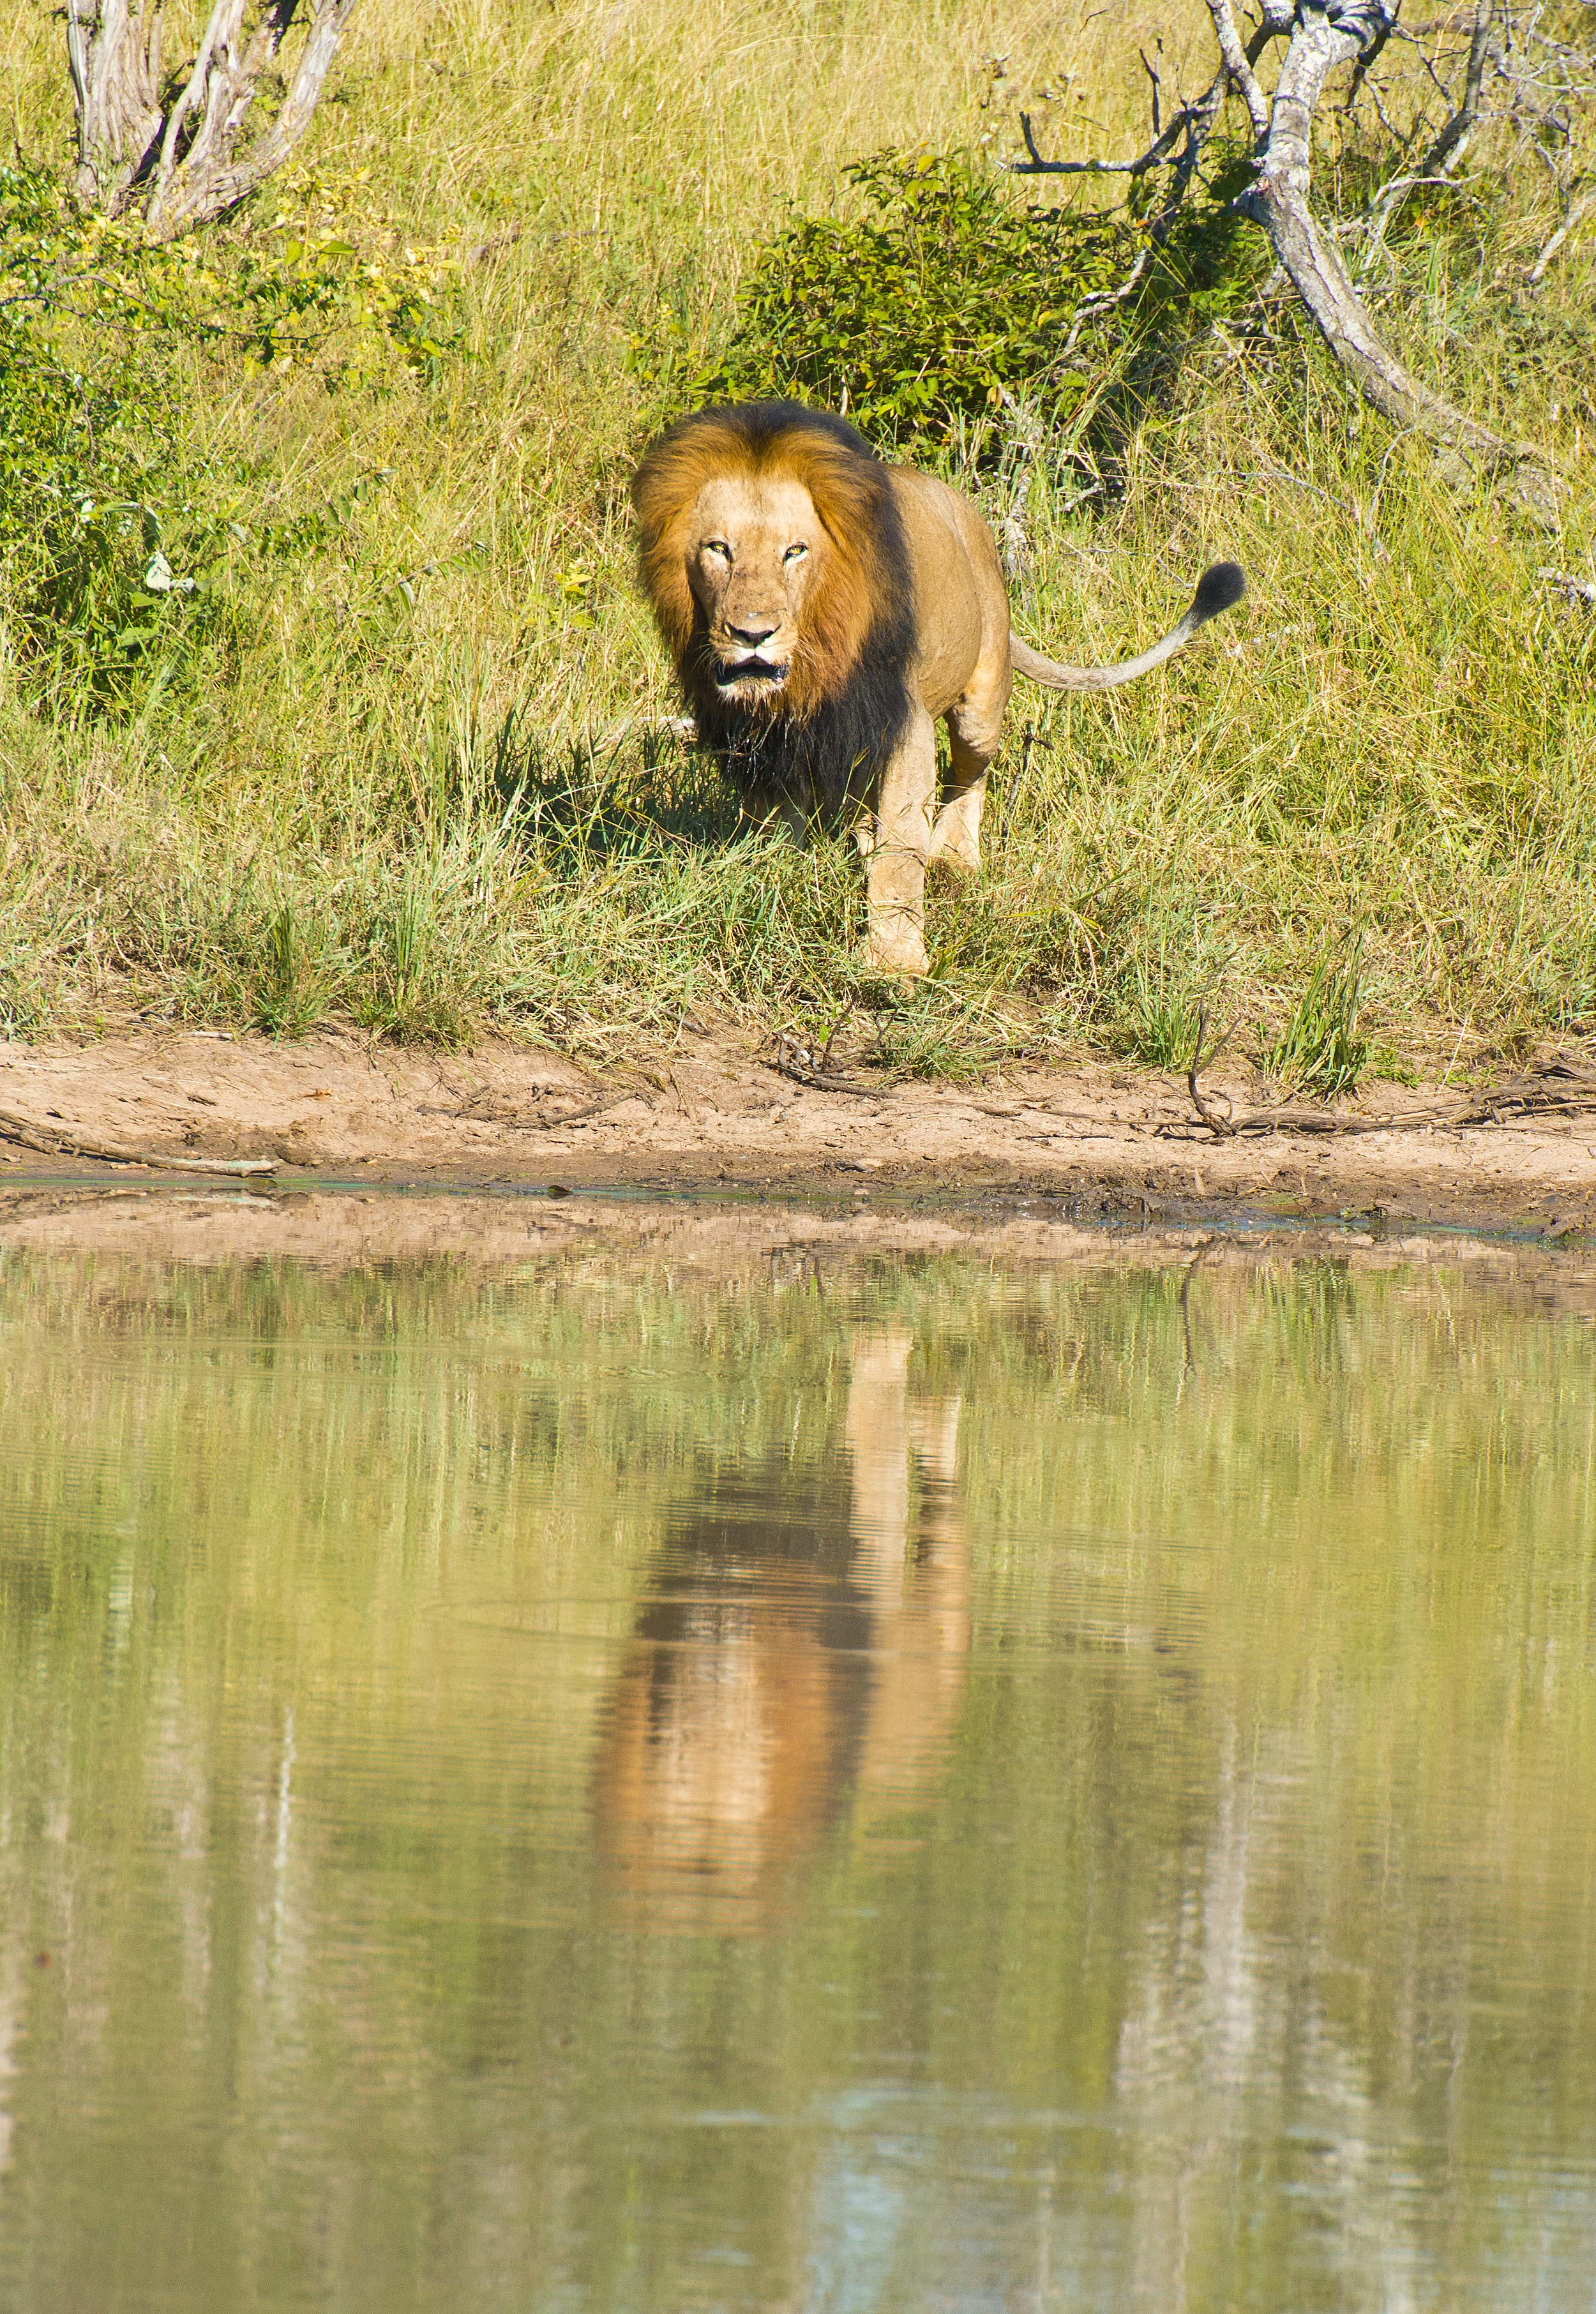 130420_DSC3208 Male lion at the watering hole.jpg